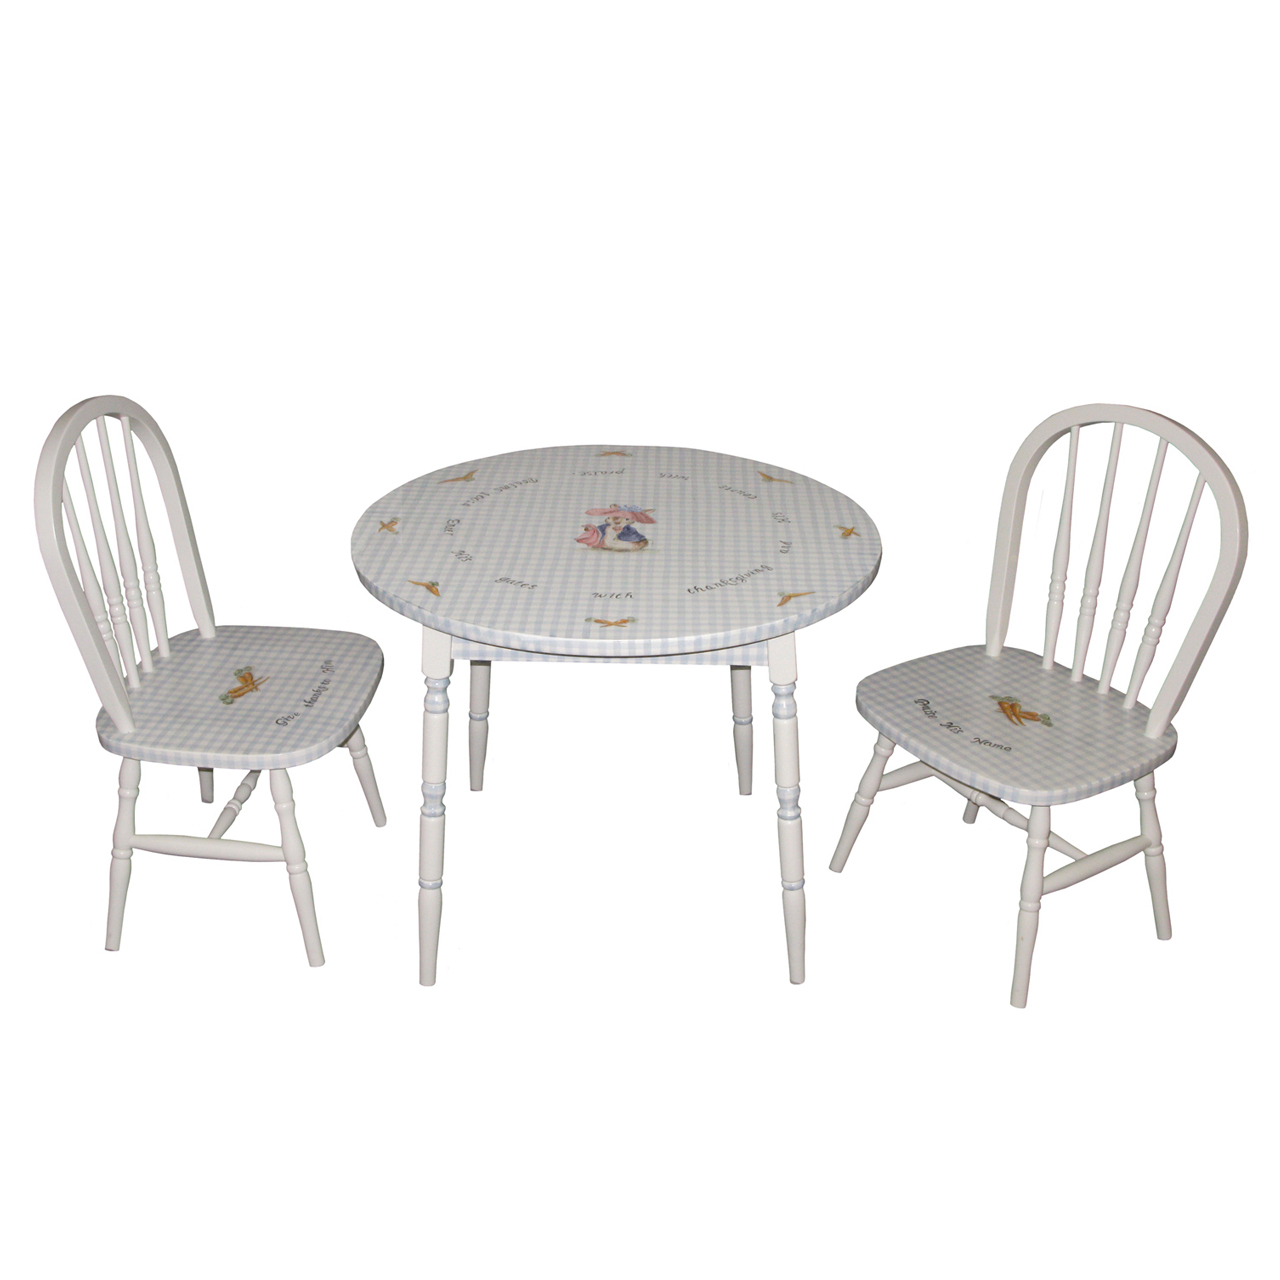 Round Play Table And Chair Set   Enchanted Forest Blue Gingham